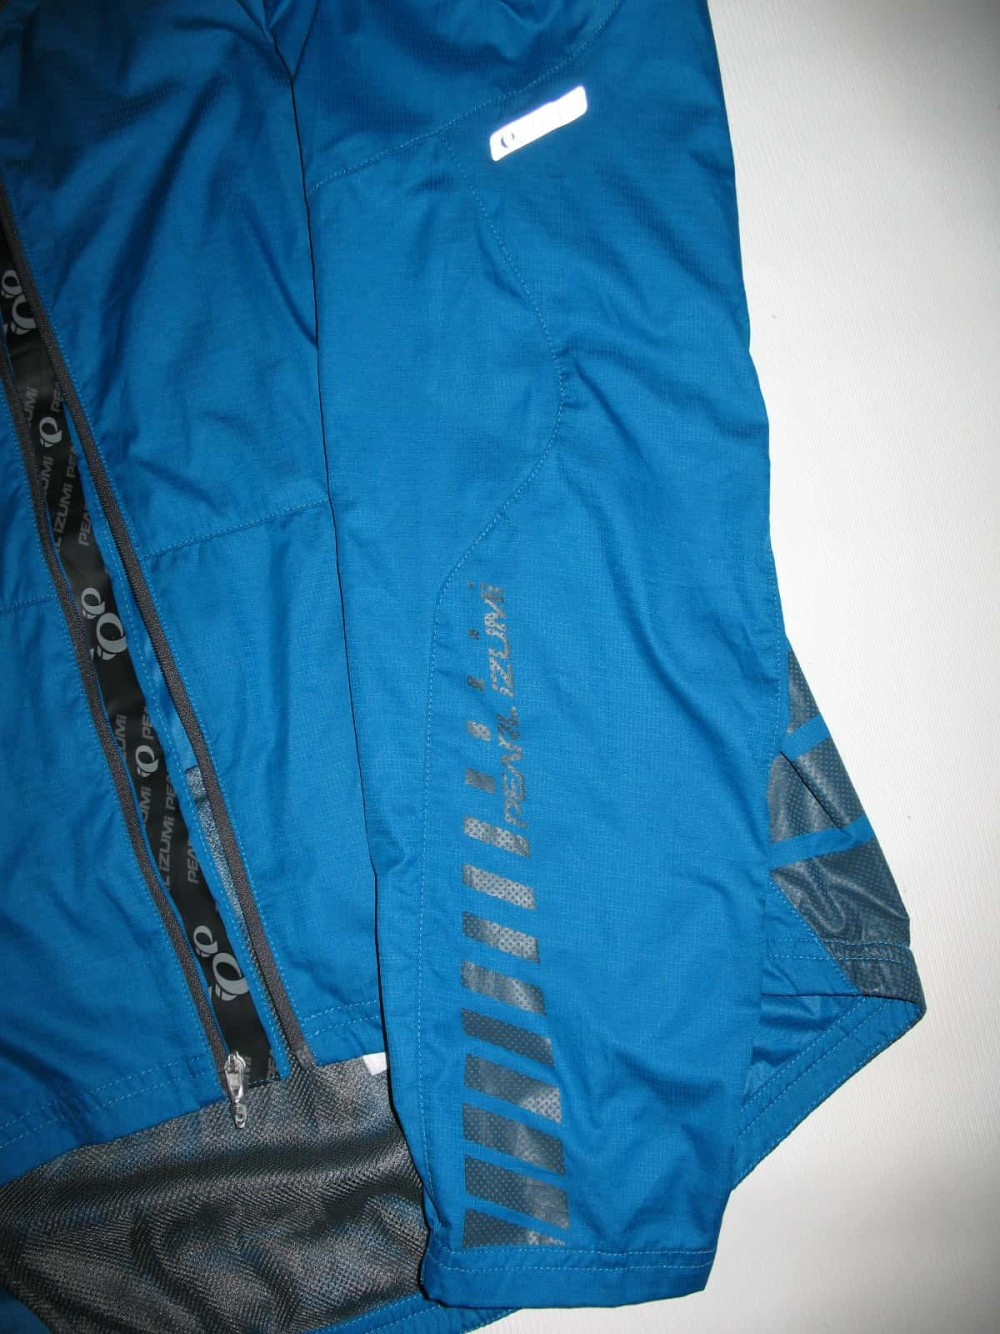 Велокуртка PEARL IZUMI elite barrier ultralight jacket (размер M) - 6